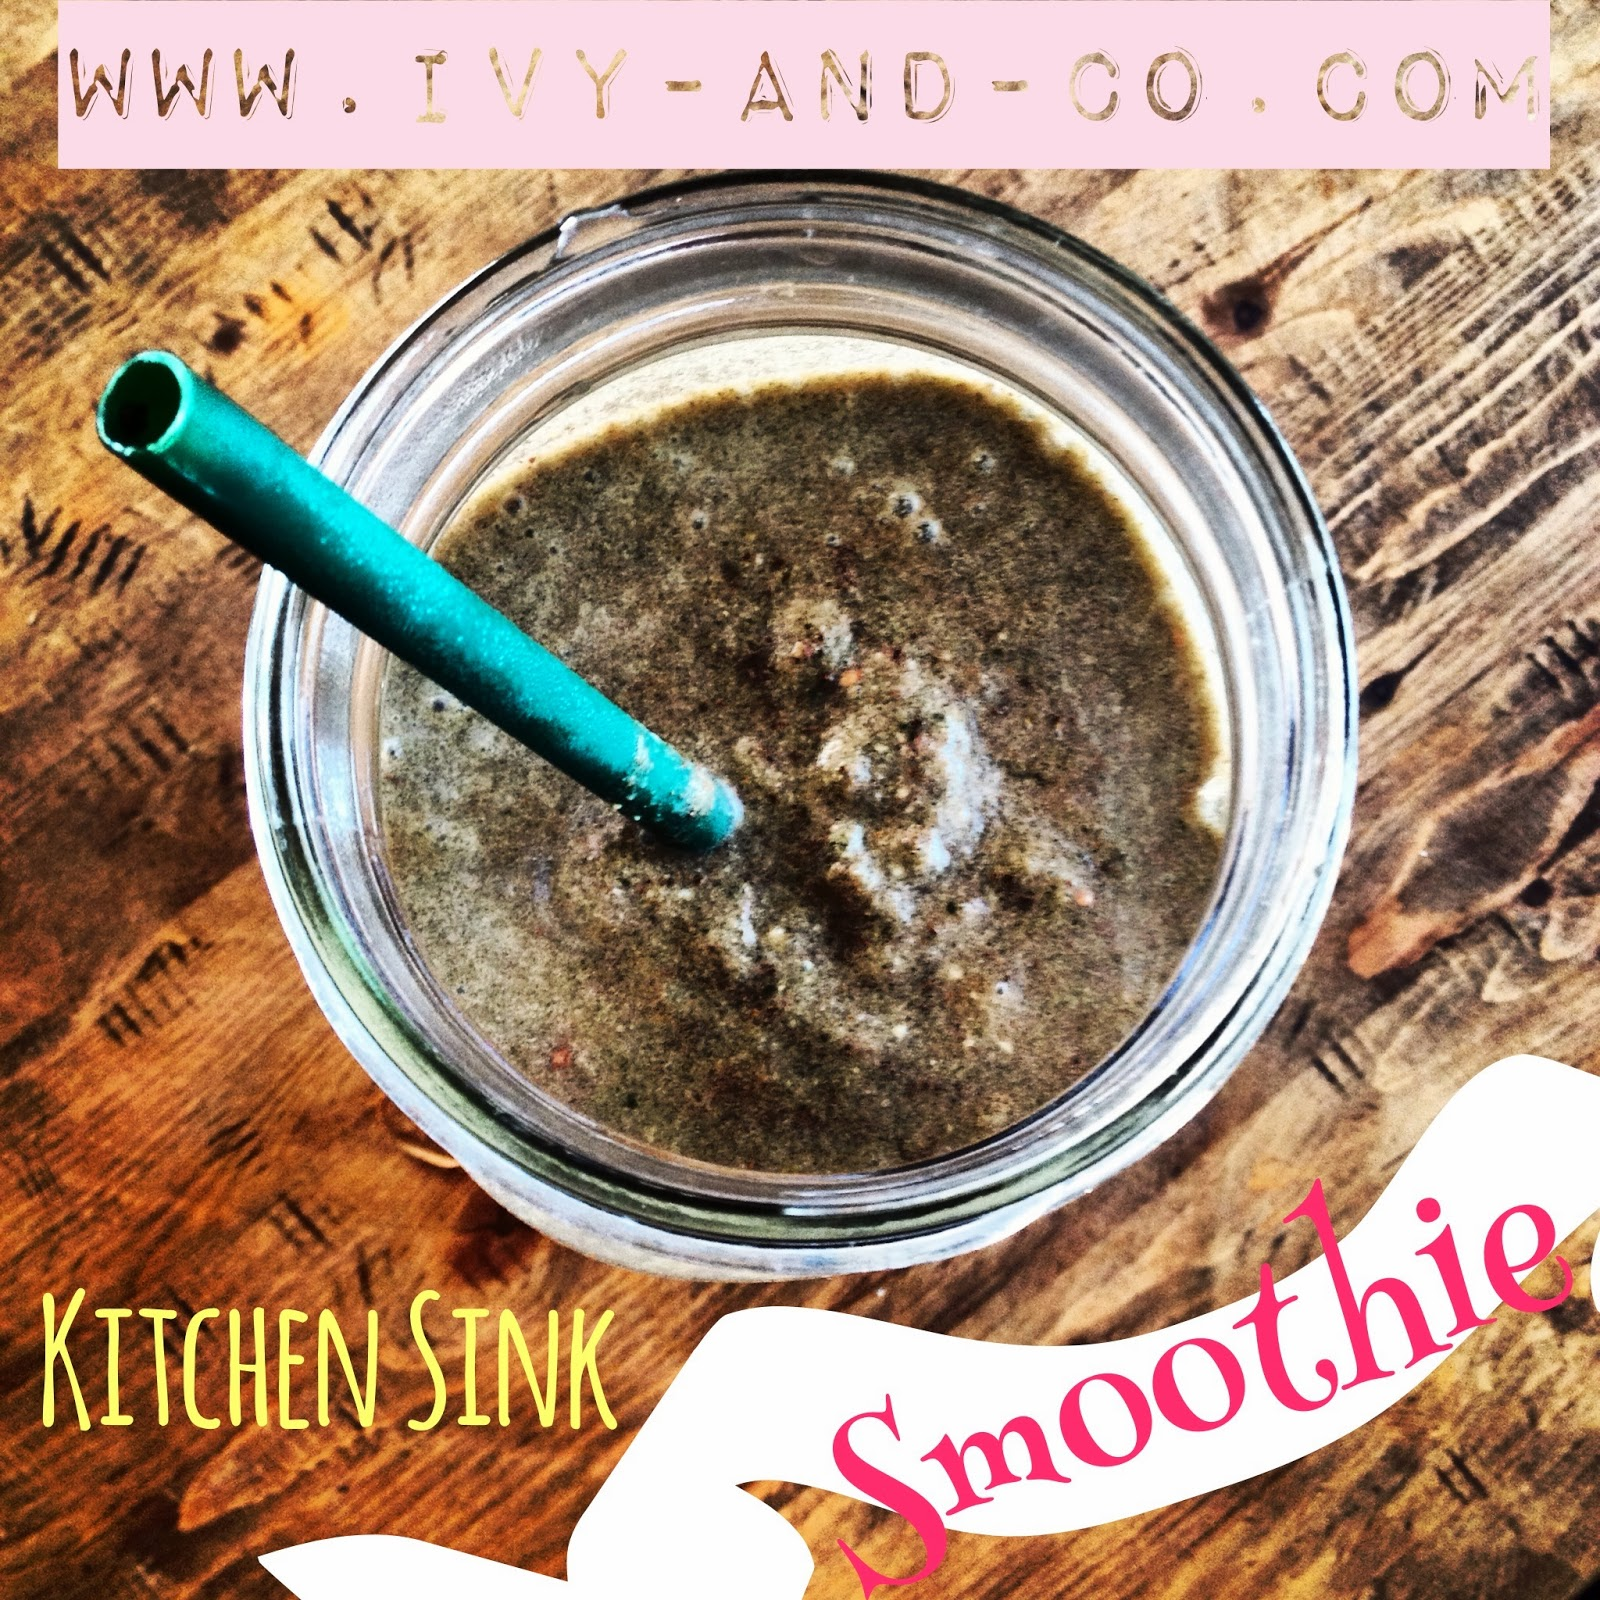 kitchen sink green smoothie on table